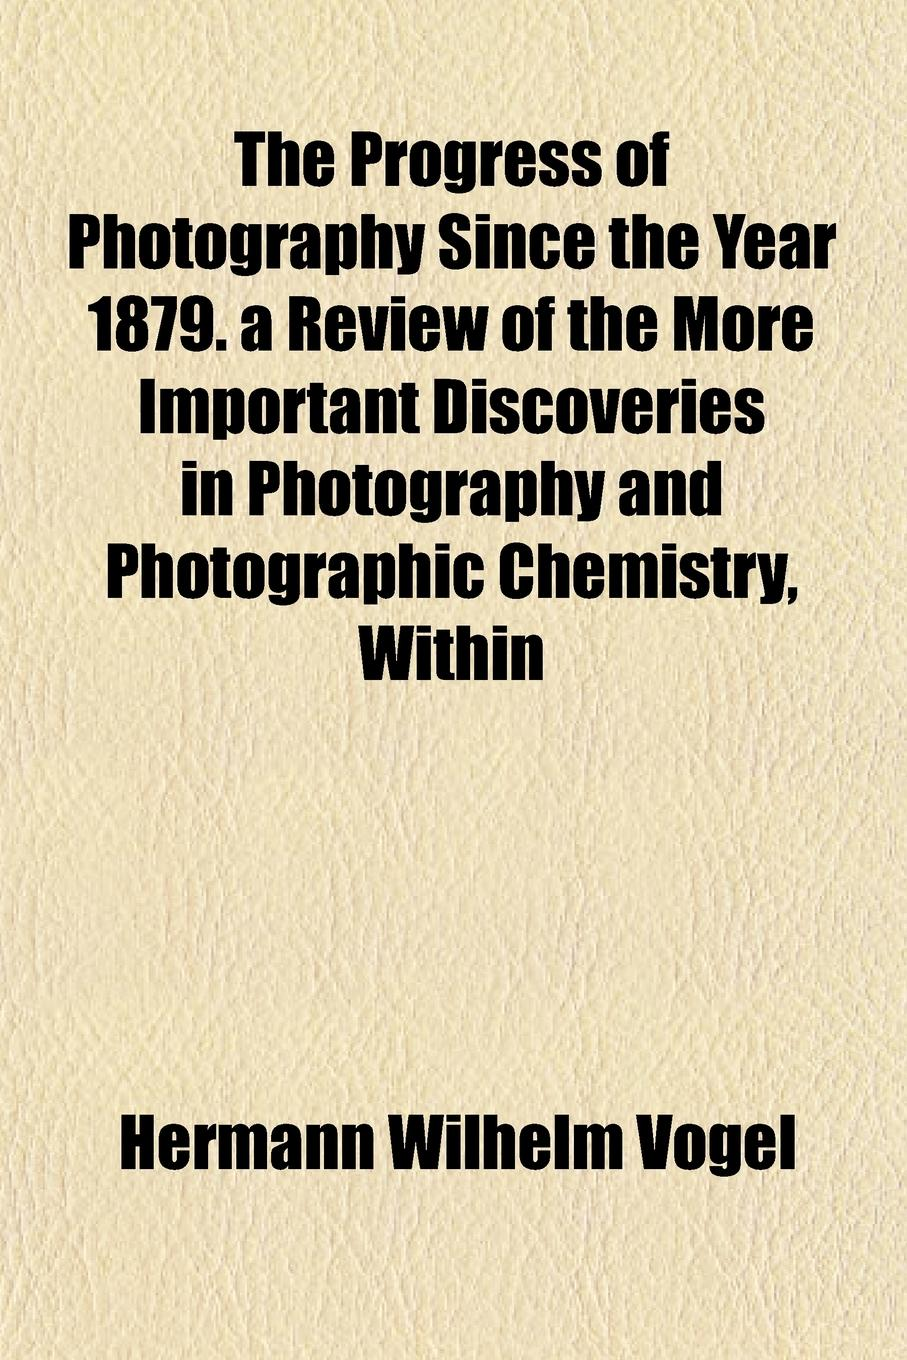 Hermann Wilhelm Vogel The Progress of Photography Since the Year 1879. a Review of the More Important Discoveries in Photography and Photographic Chemistry, Within free shipping kayipht cm400ha1 24h can directly buy or contact the seller